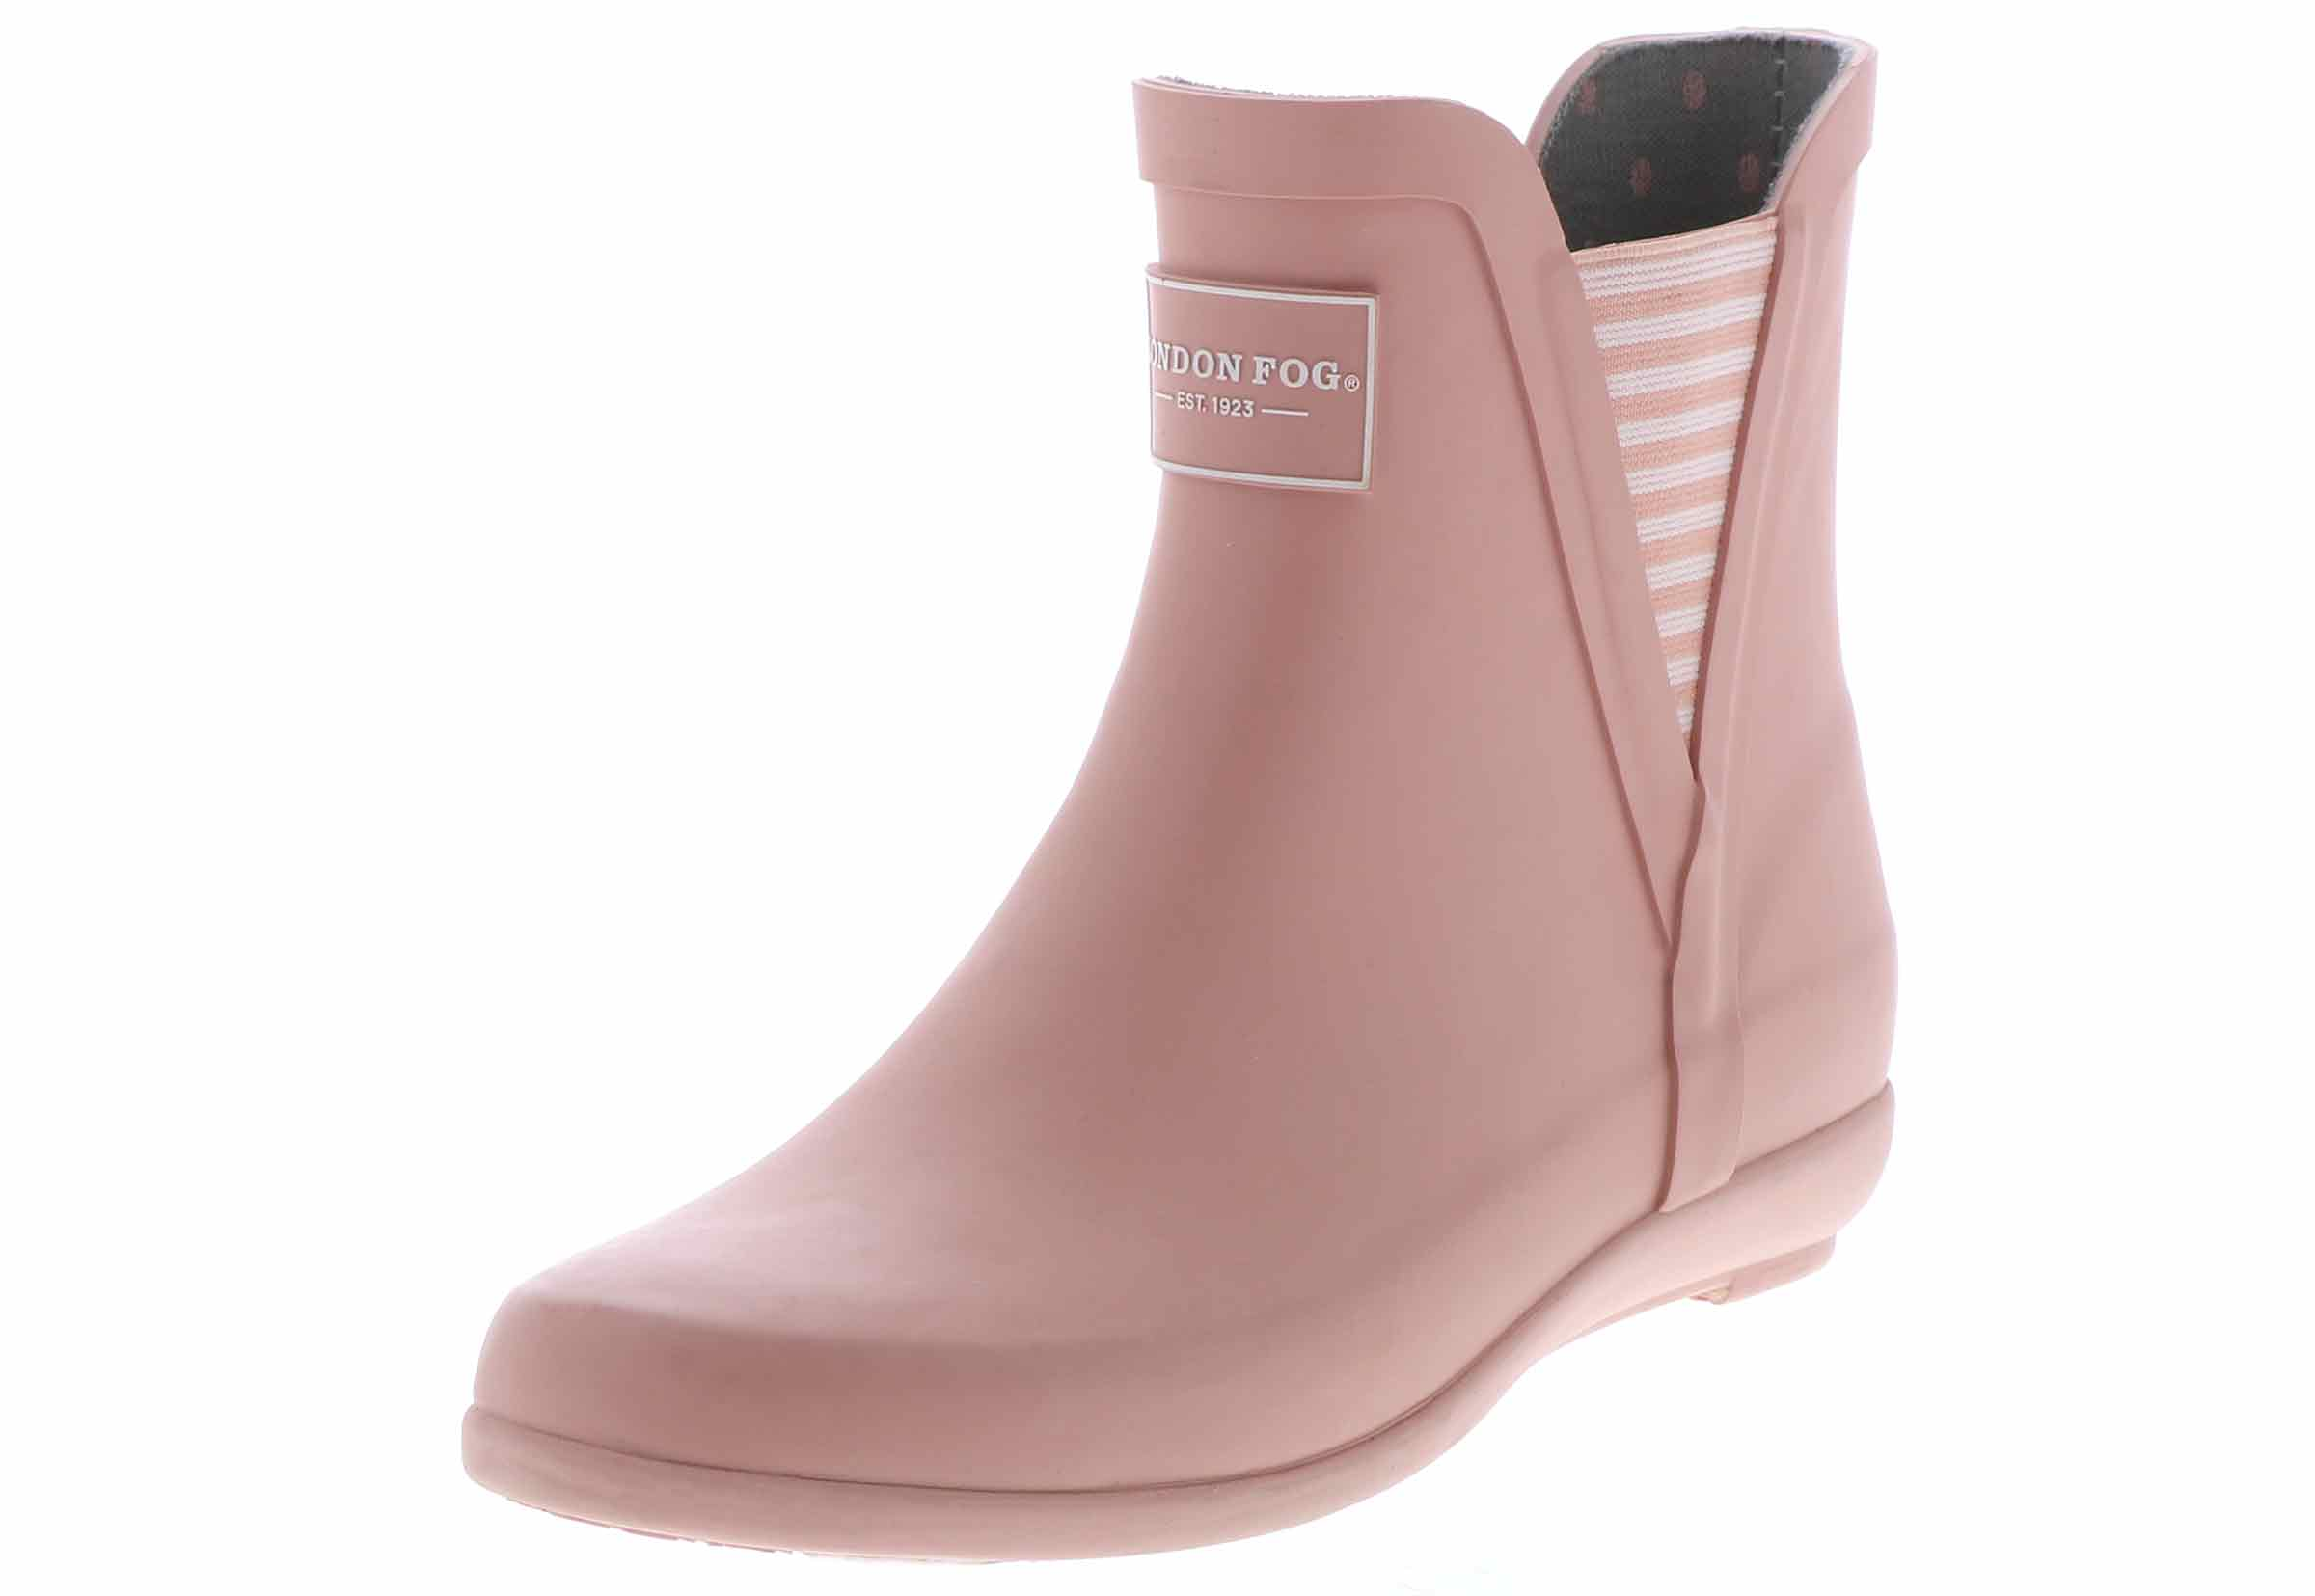 london fog rain boots review